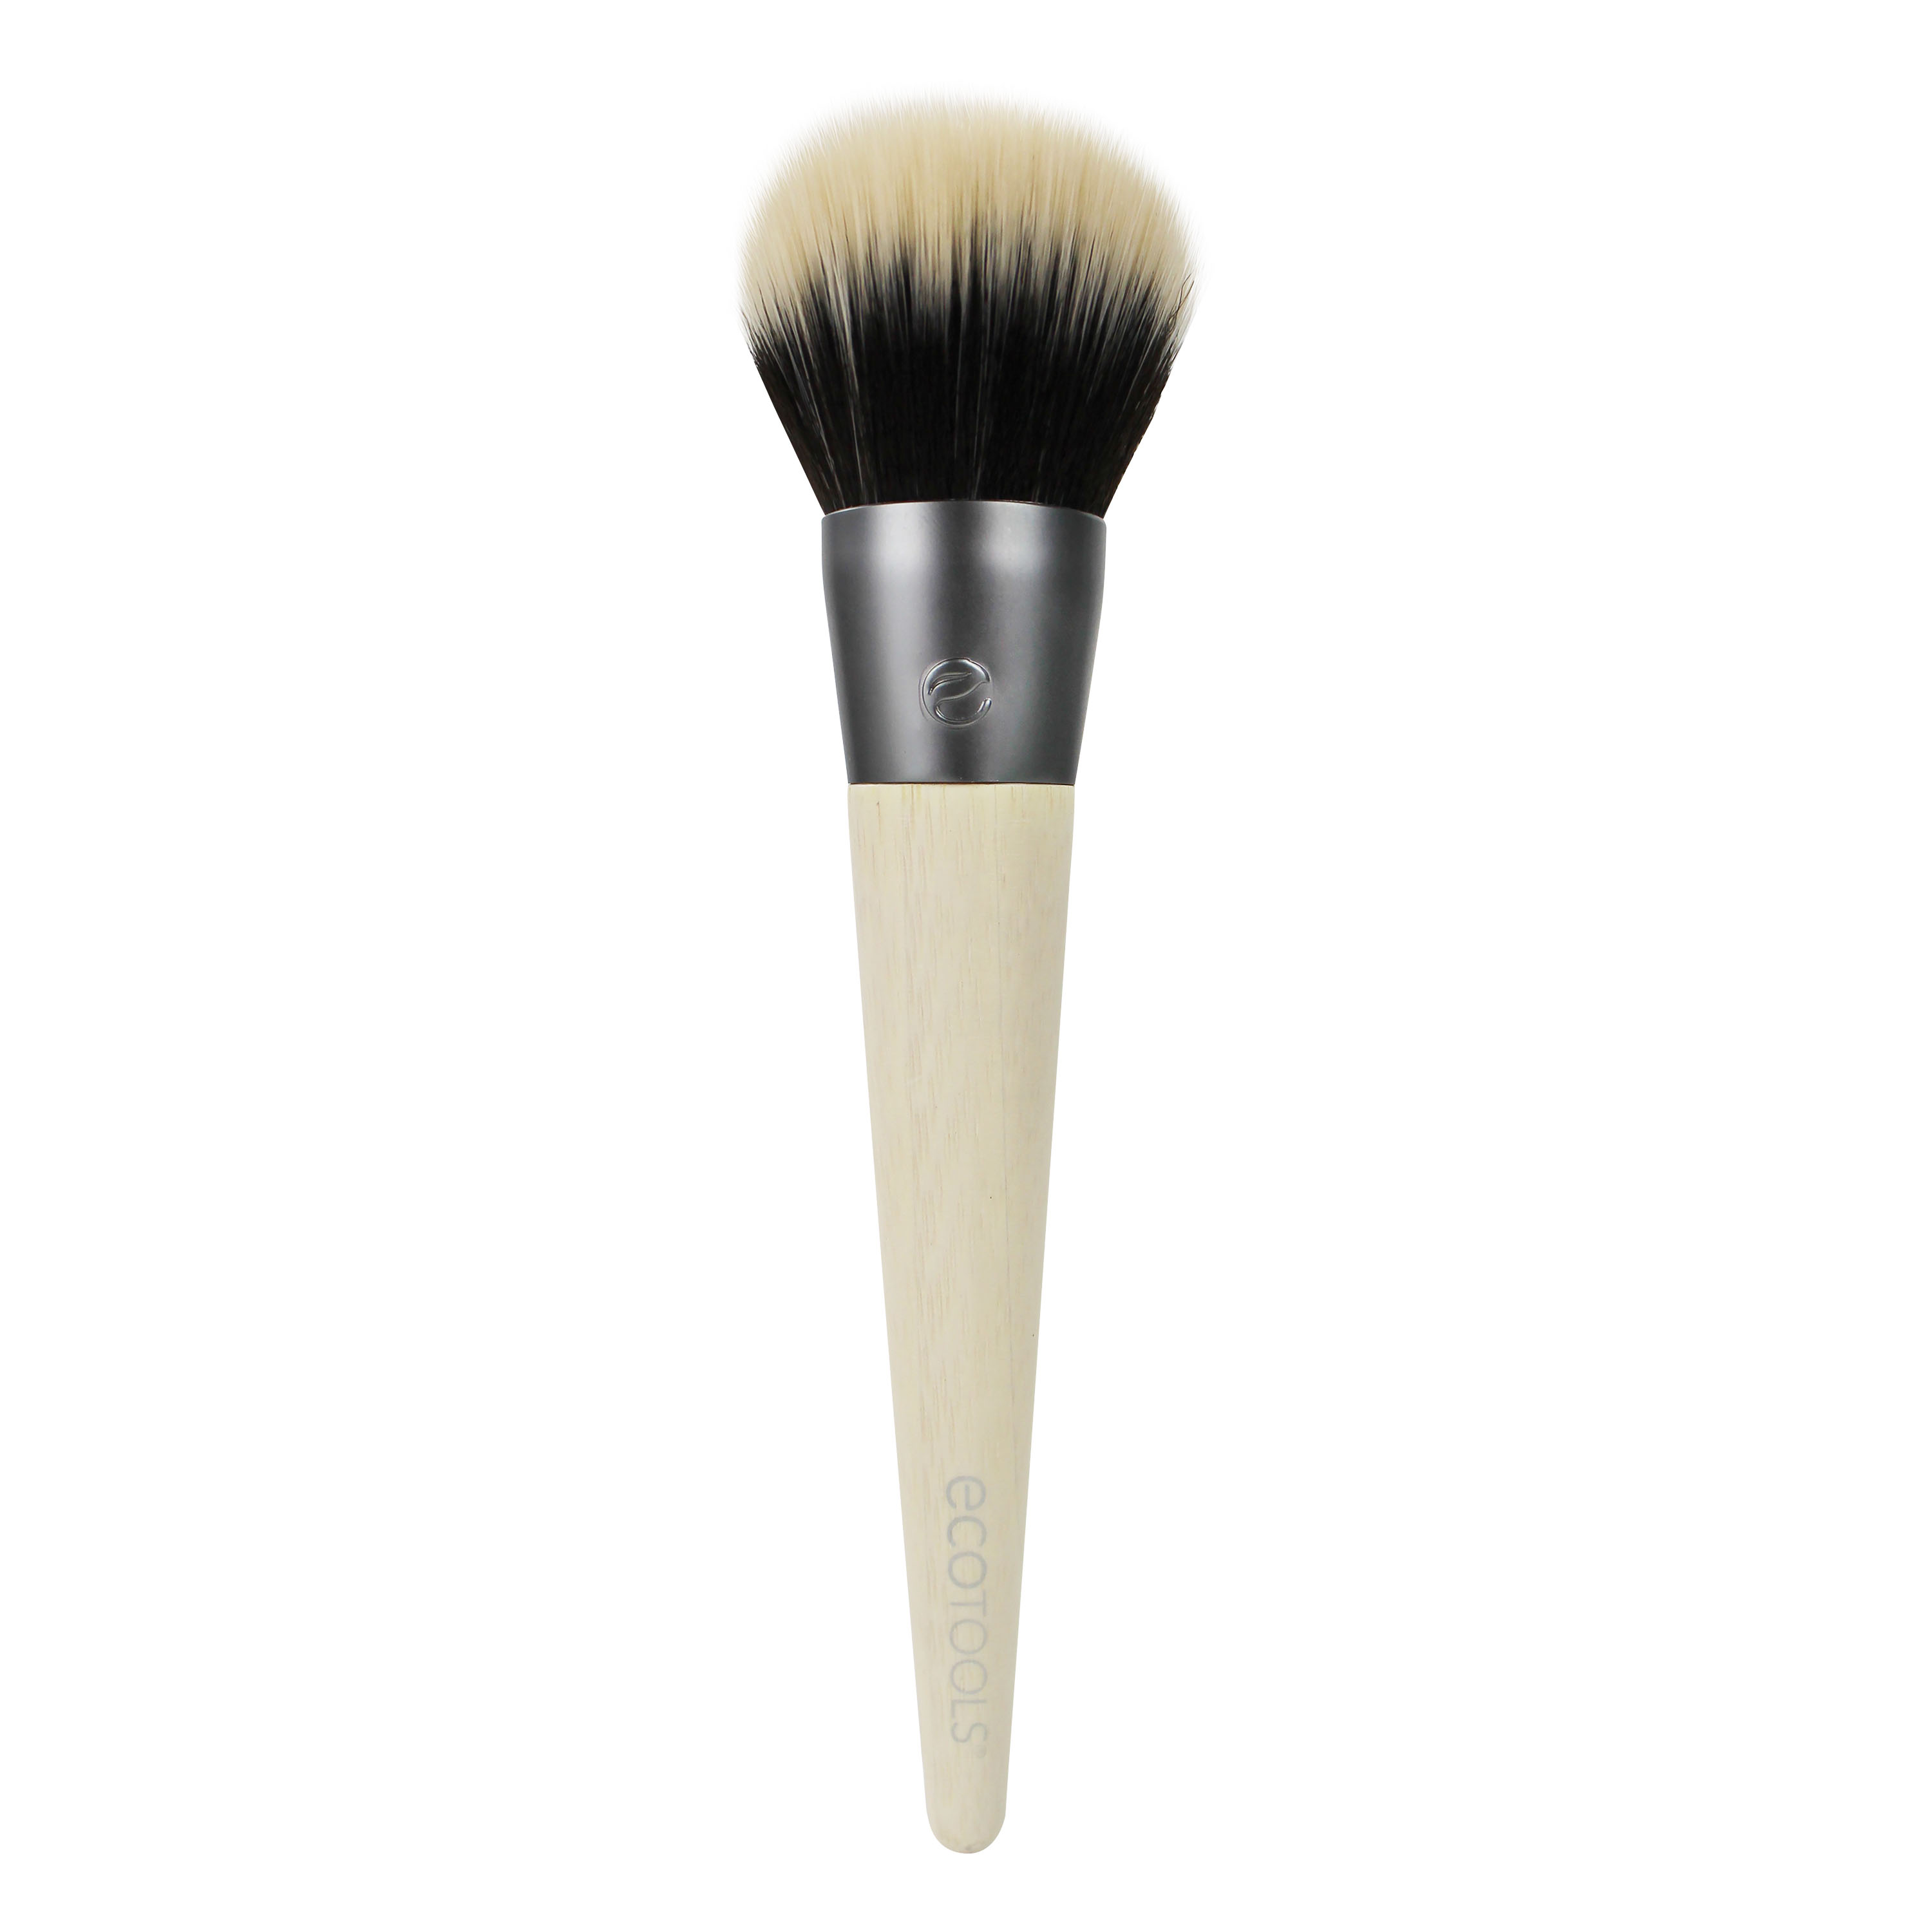 Eco Tools Blending + Bronzing Makeup Brush by Ecotools